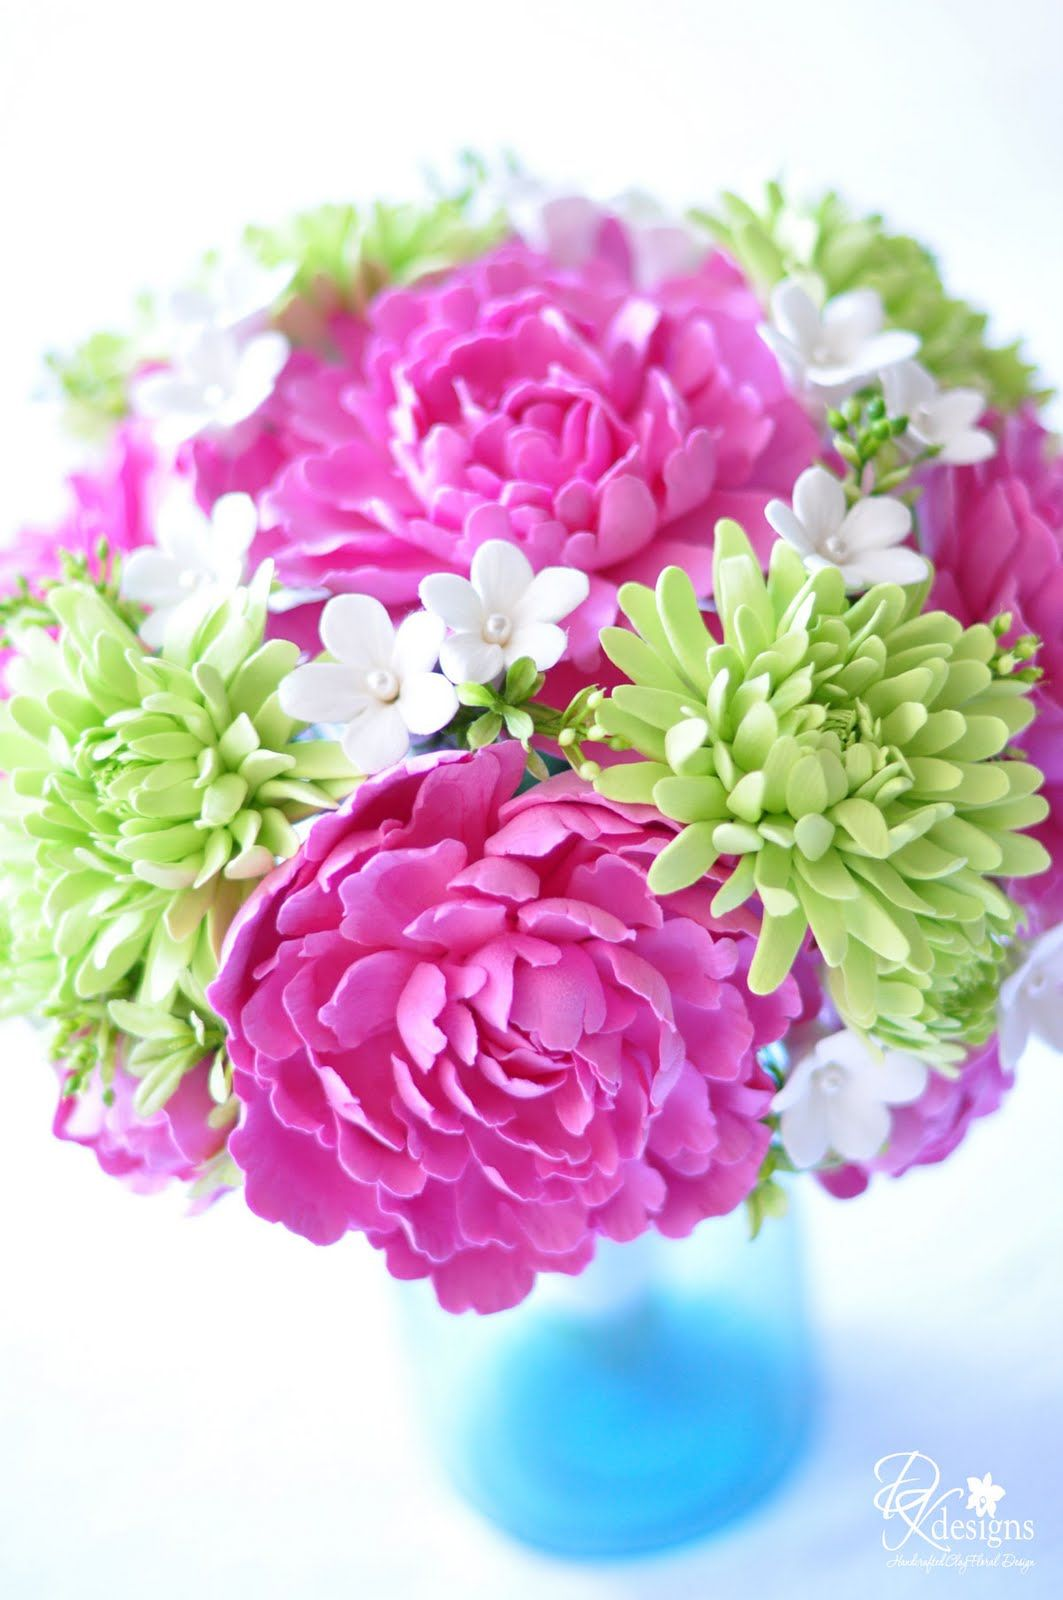 Pink peonies, green spider mums, and stephanotis flowers with pearl centers